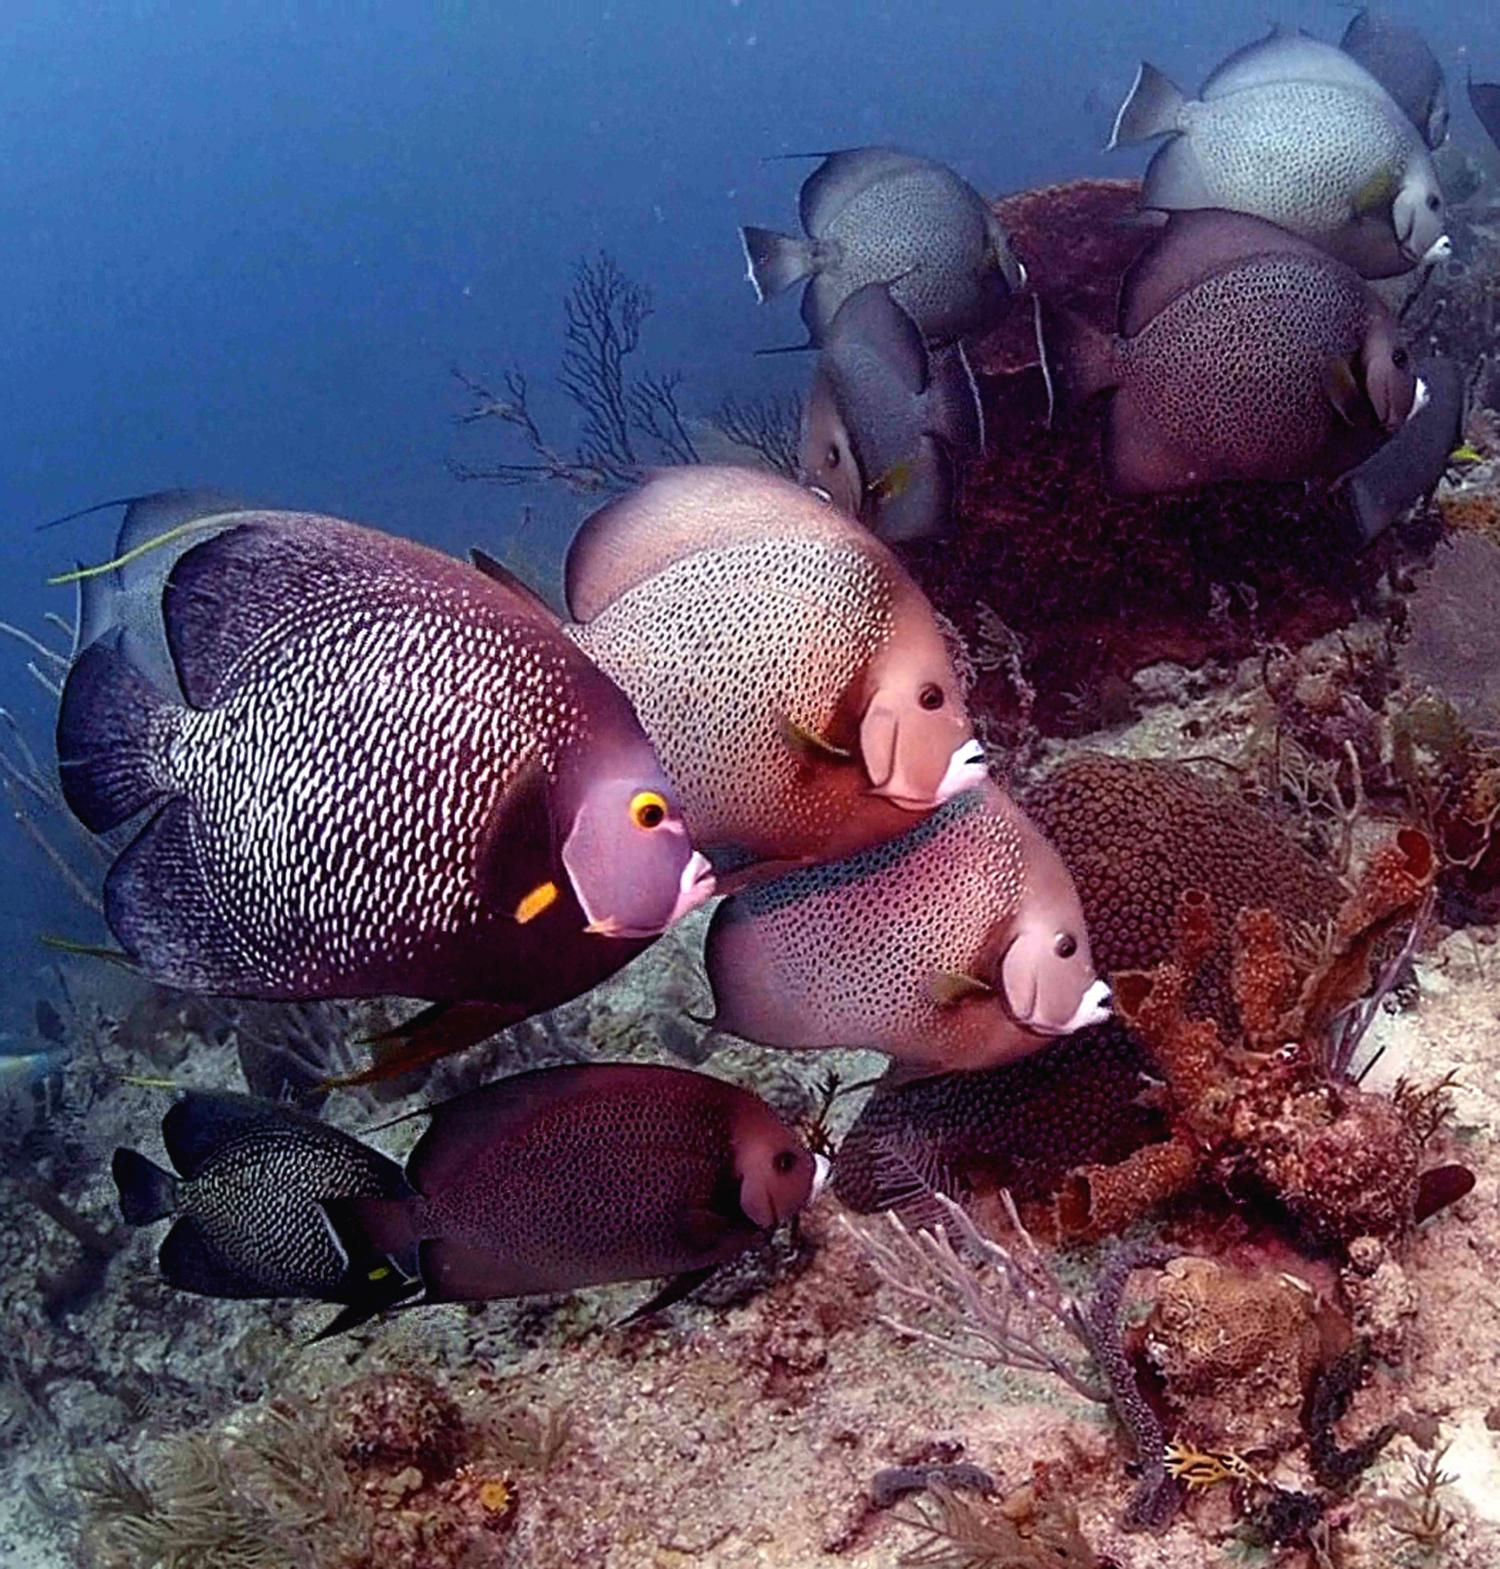 Endangered Corals Smothered By Sponges On Overfished